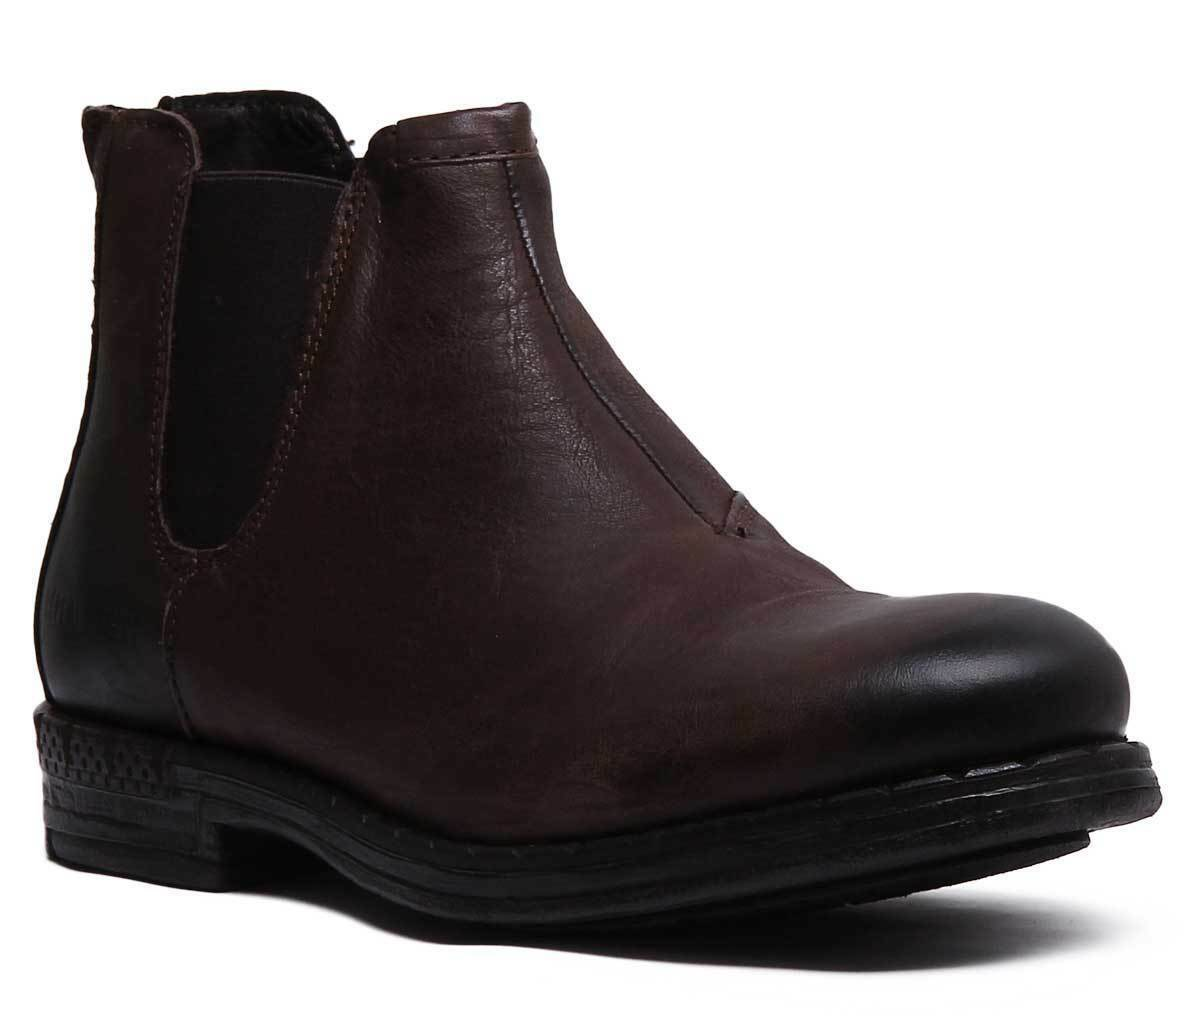 Replay Durand Men Leather Chelsea boots In Dark Brown Size UK 6 - 12